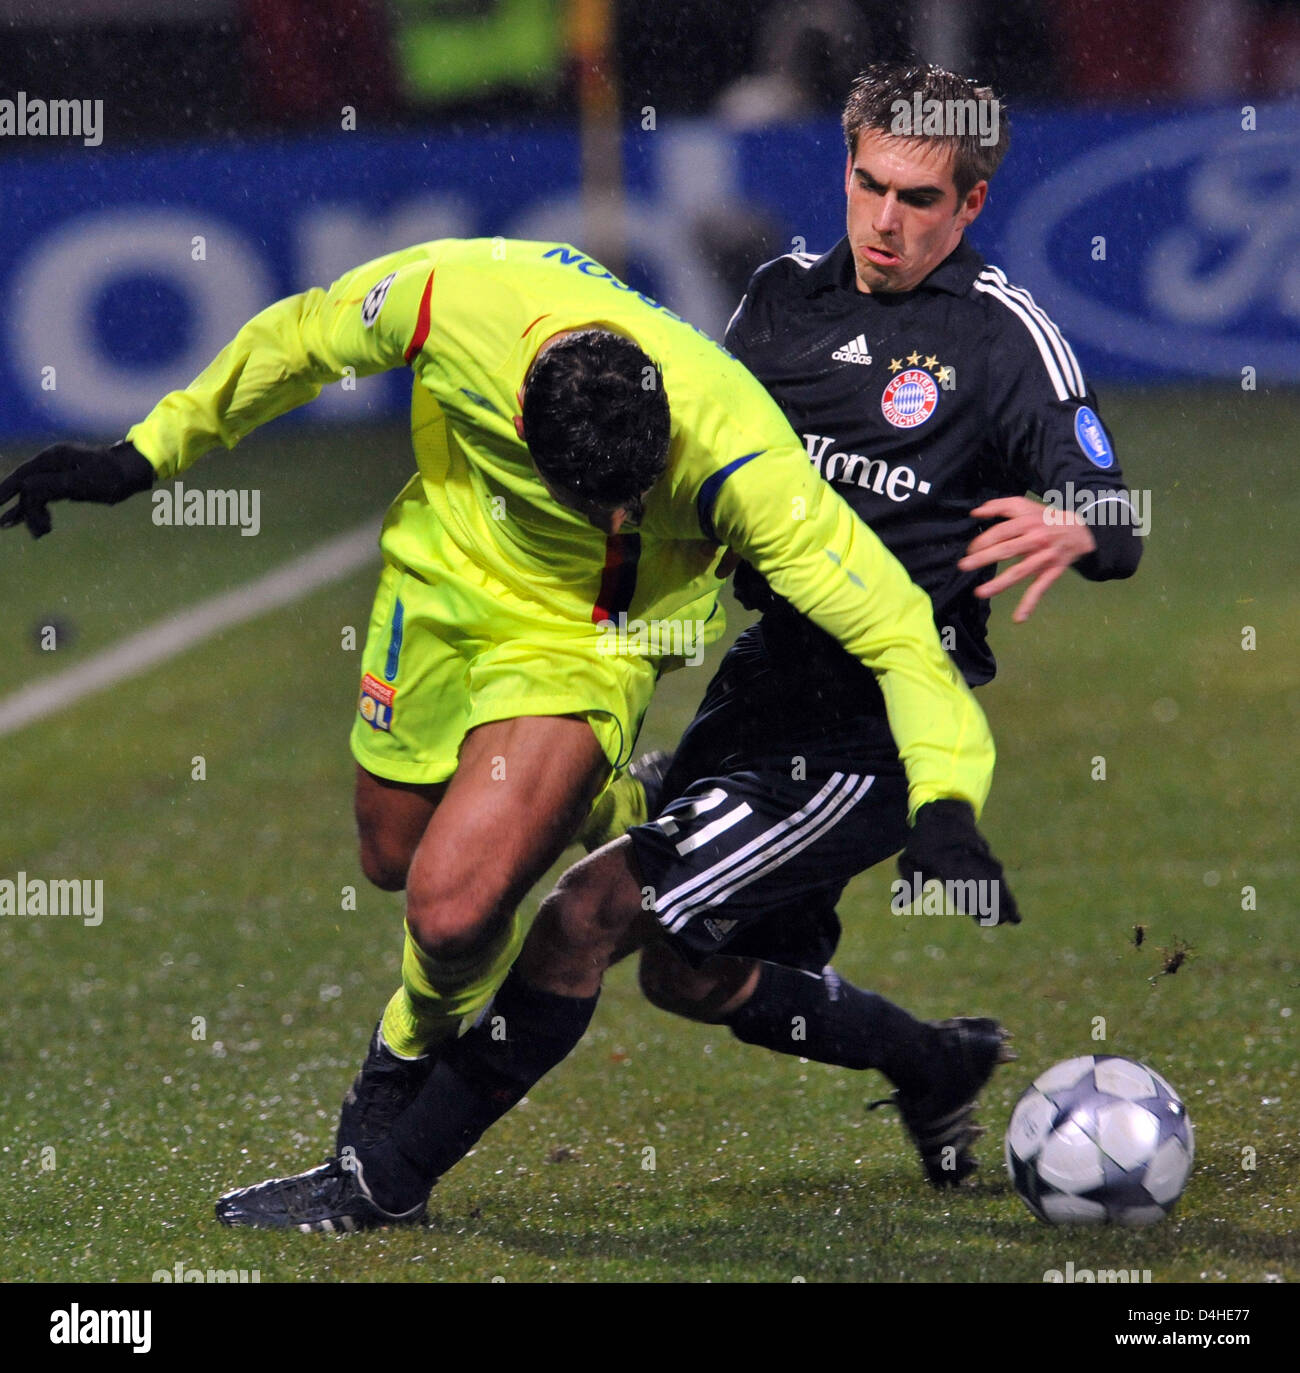 Ederson of Olympique Lyon vies for the ball with Philipp Lahm of FC Bayern Munich during the Champions League Group Stock Photo